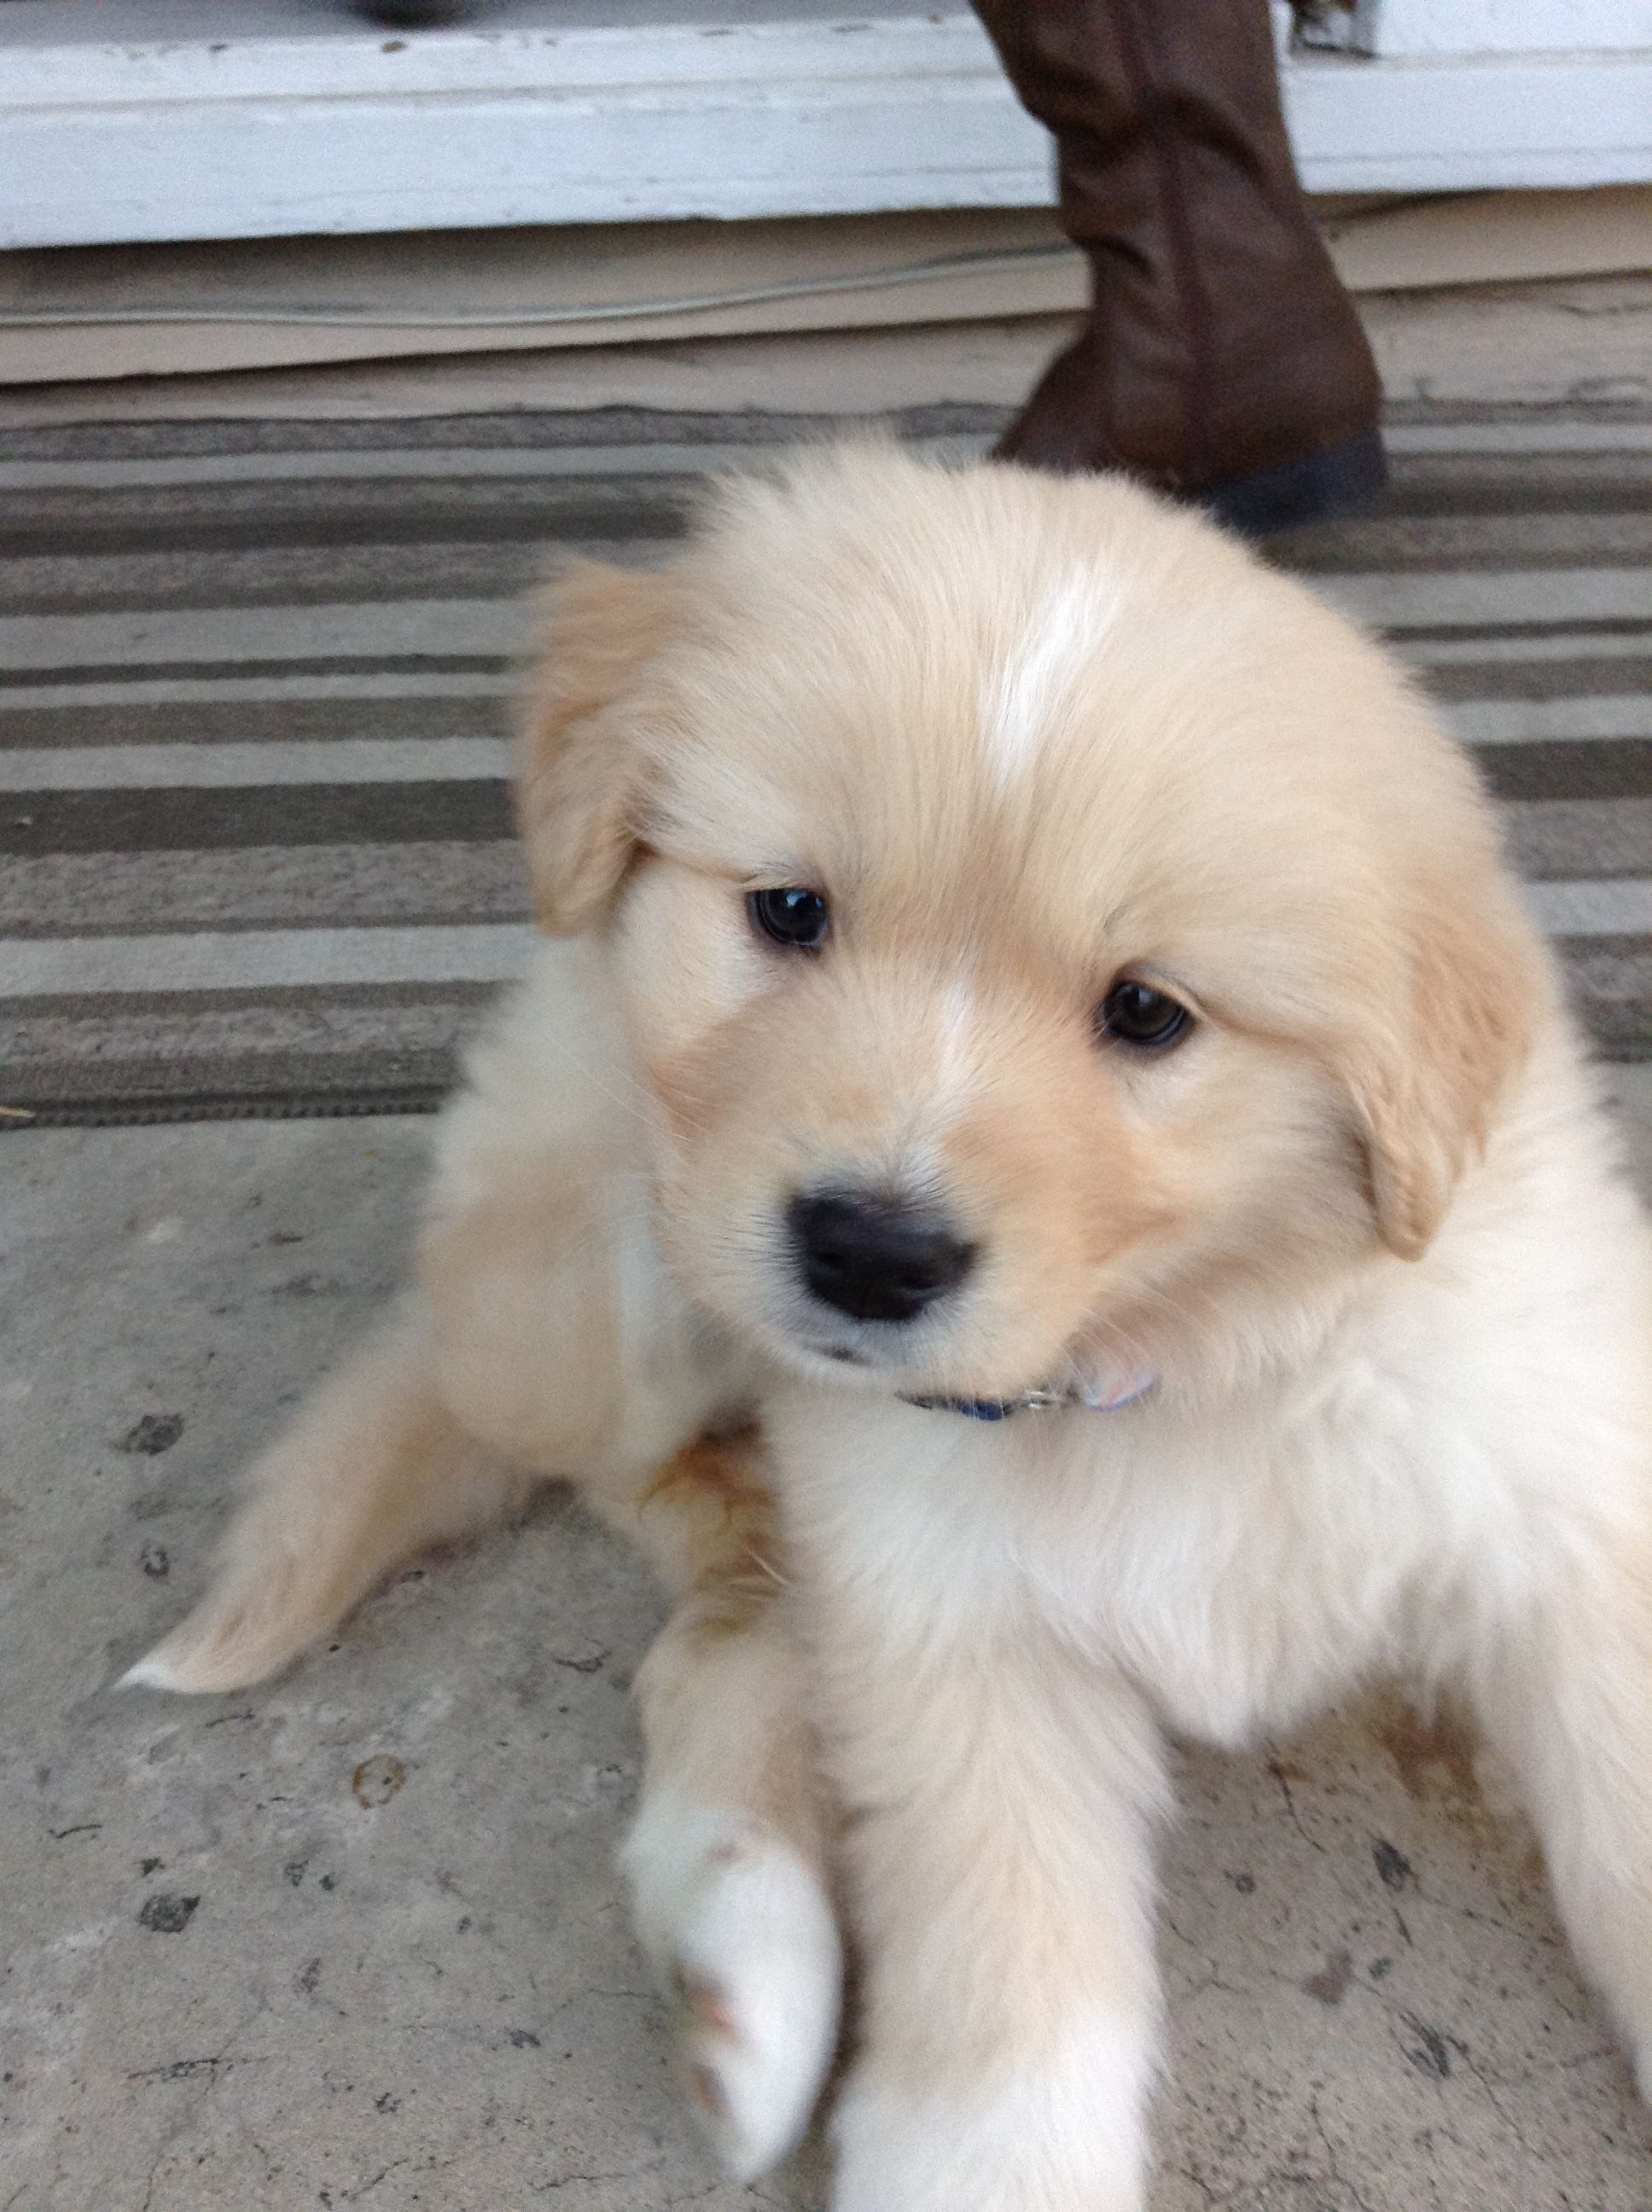 Her Name Is Ginger And She Is So Cute Puppies Cute Dogs